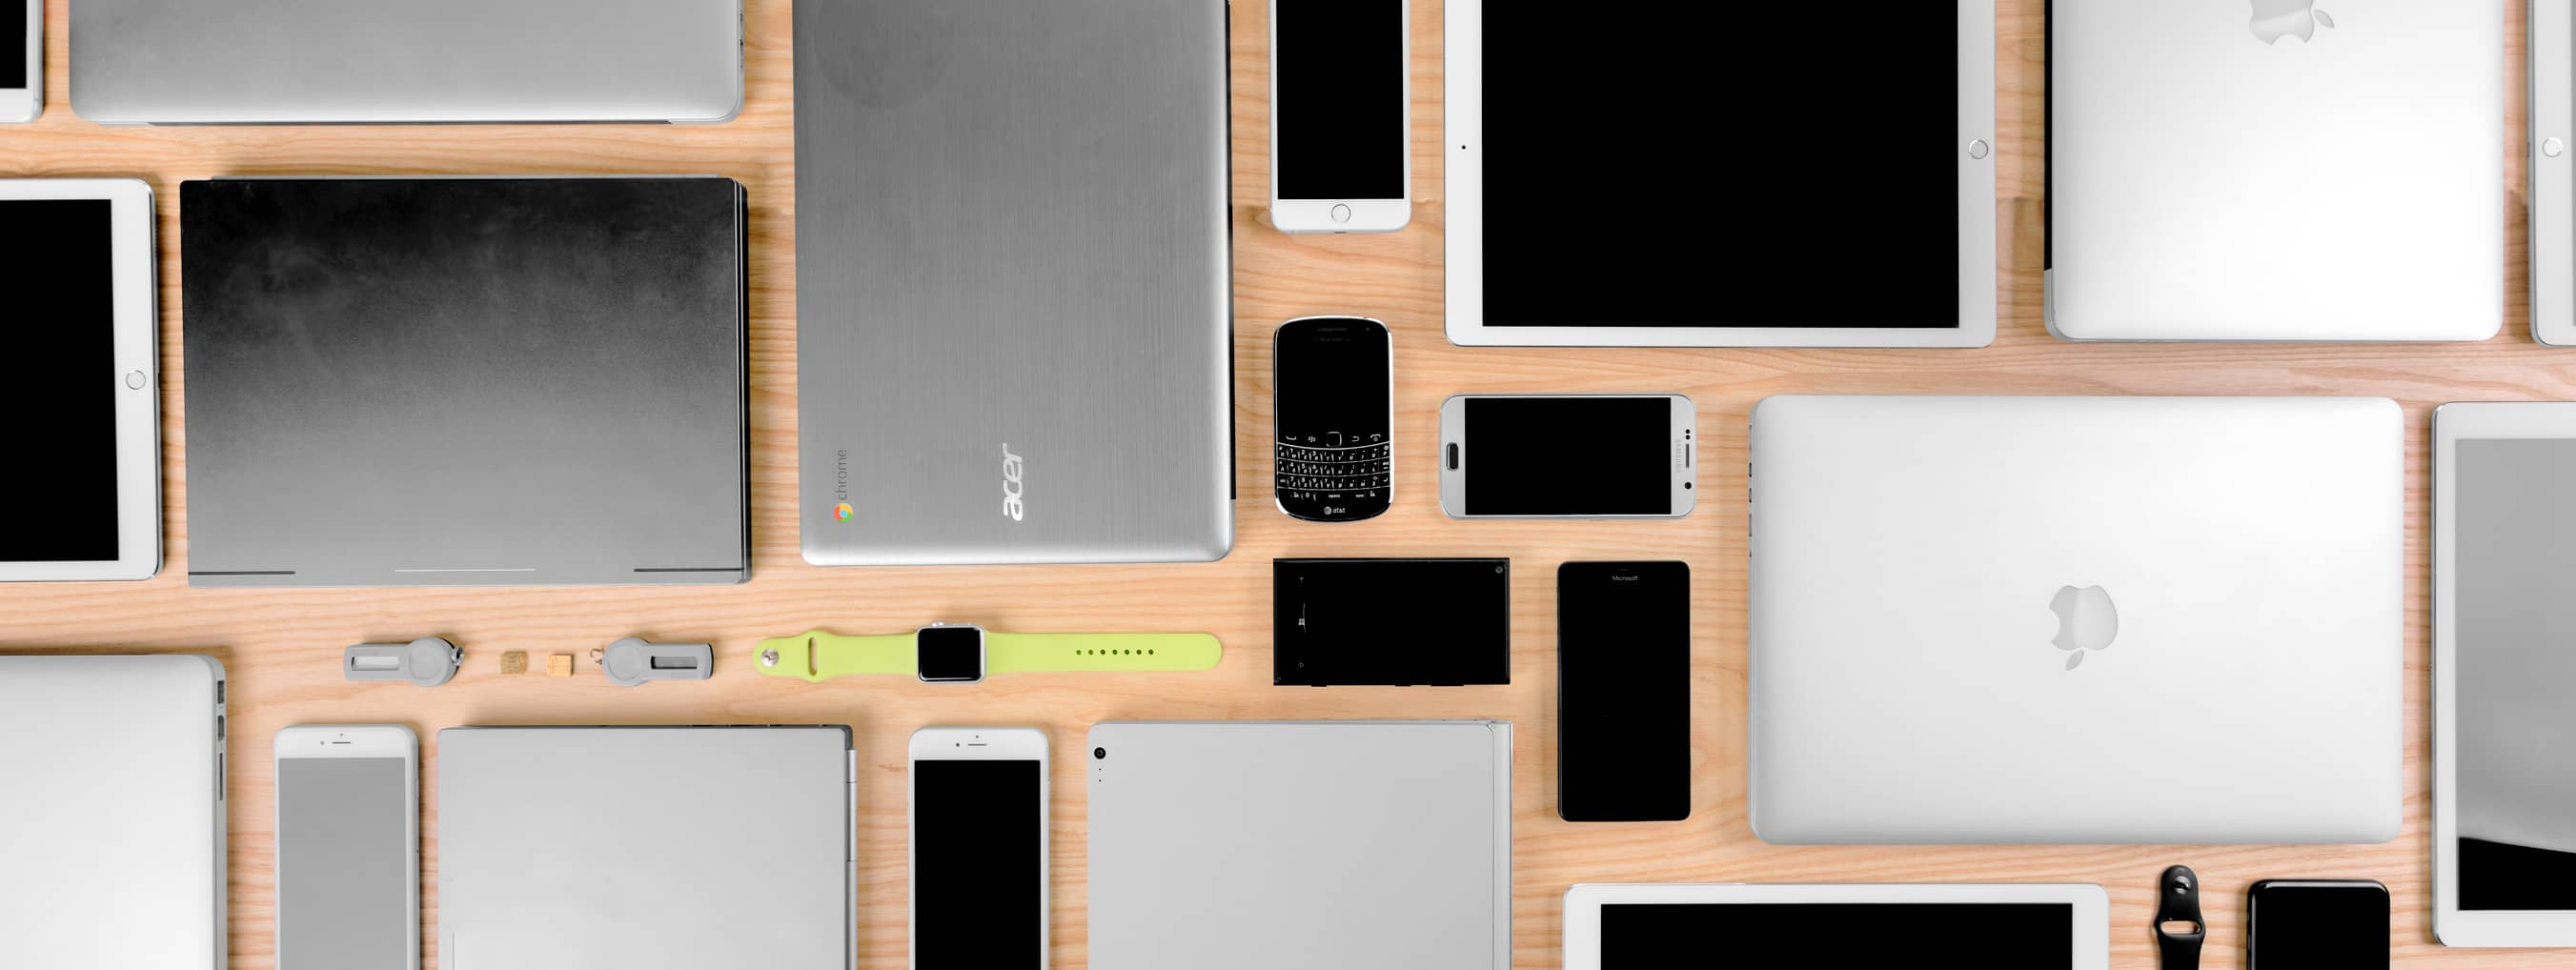 Image with a variety of devices, neatly arranged including laptop computers, smartphones, tablets and wearables.